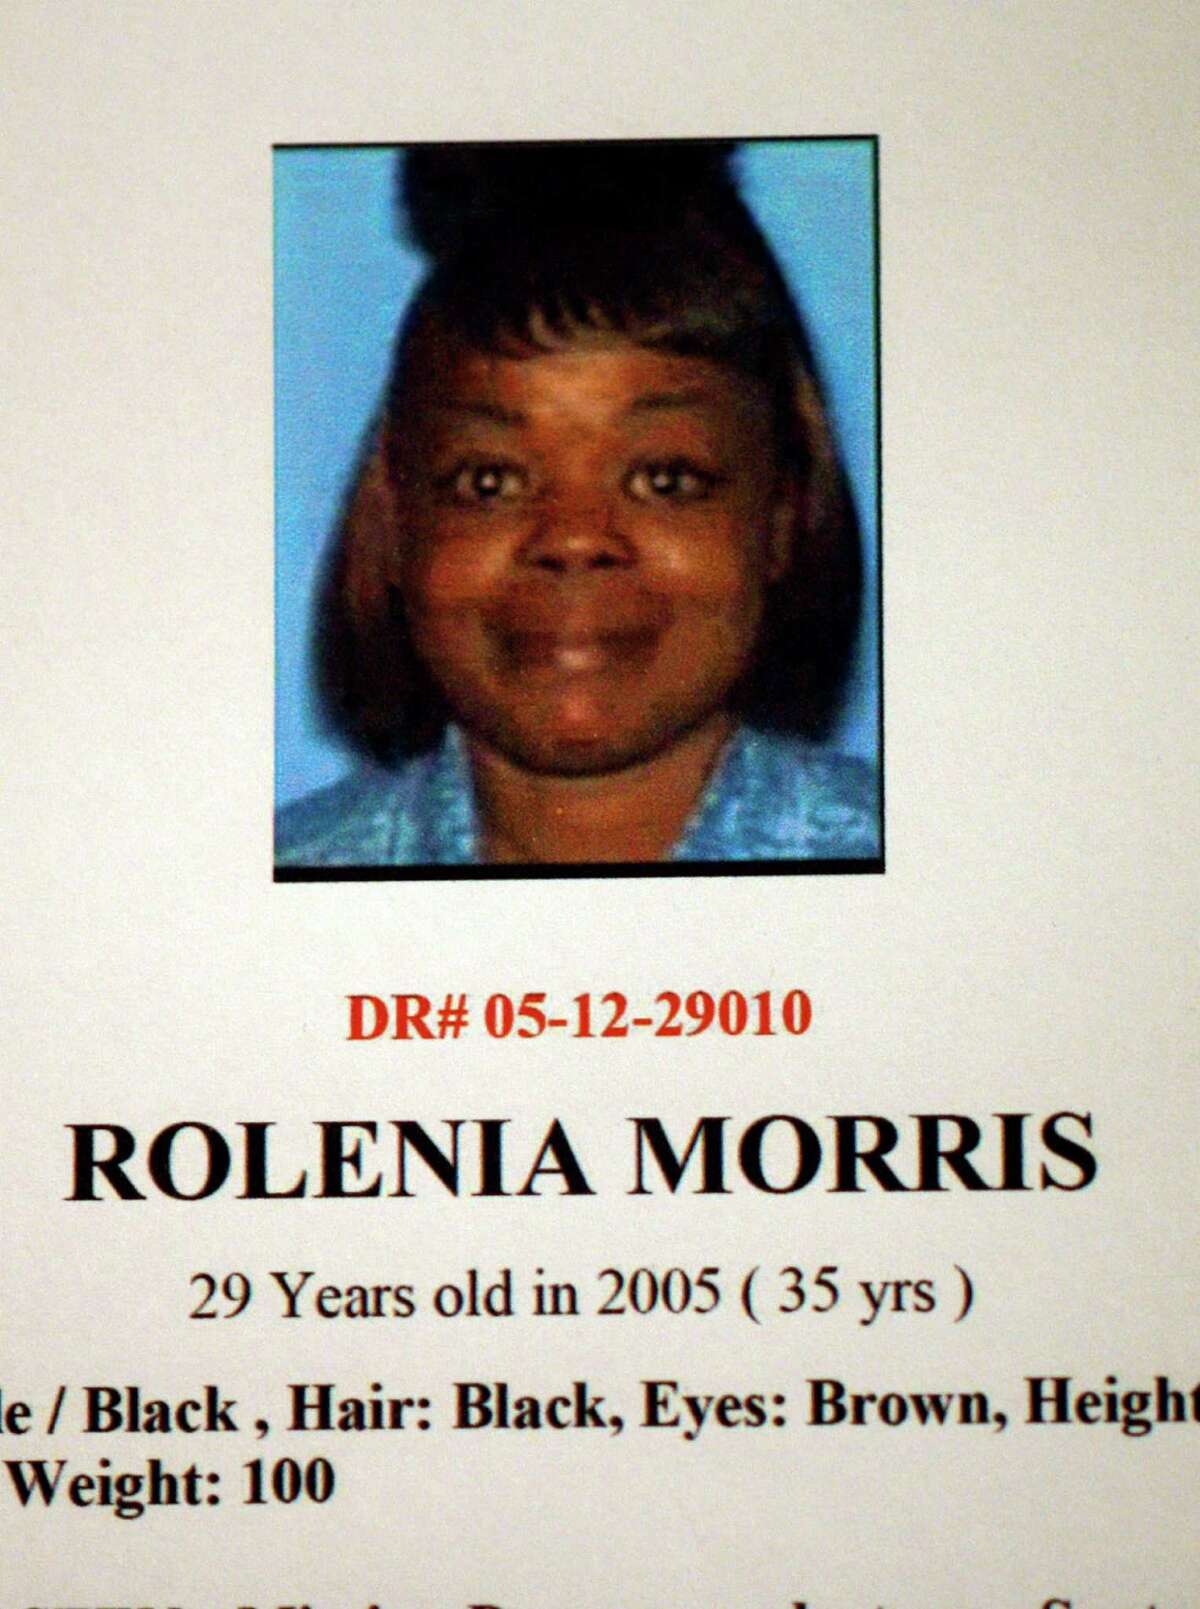 Rolenia Morris is one of eight new possible victims in the Lonnie Franklin Jr serial killer Grim Sleeper case. She has been missing since September, 2005. Los Angeles Police Dept detective provided some new information regarding the ongoing investigation ofthe well-known